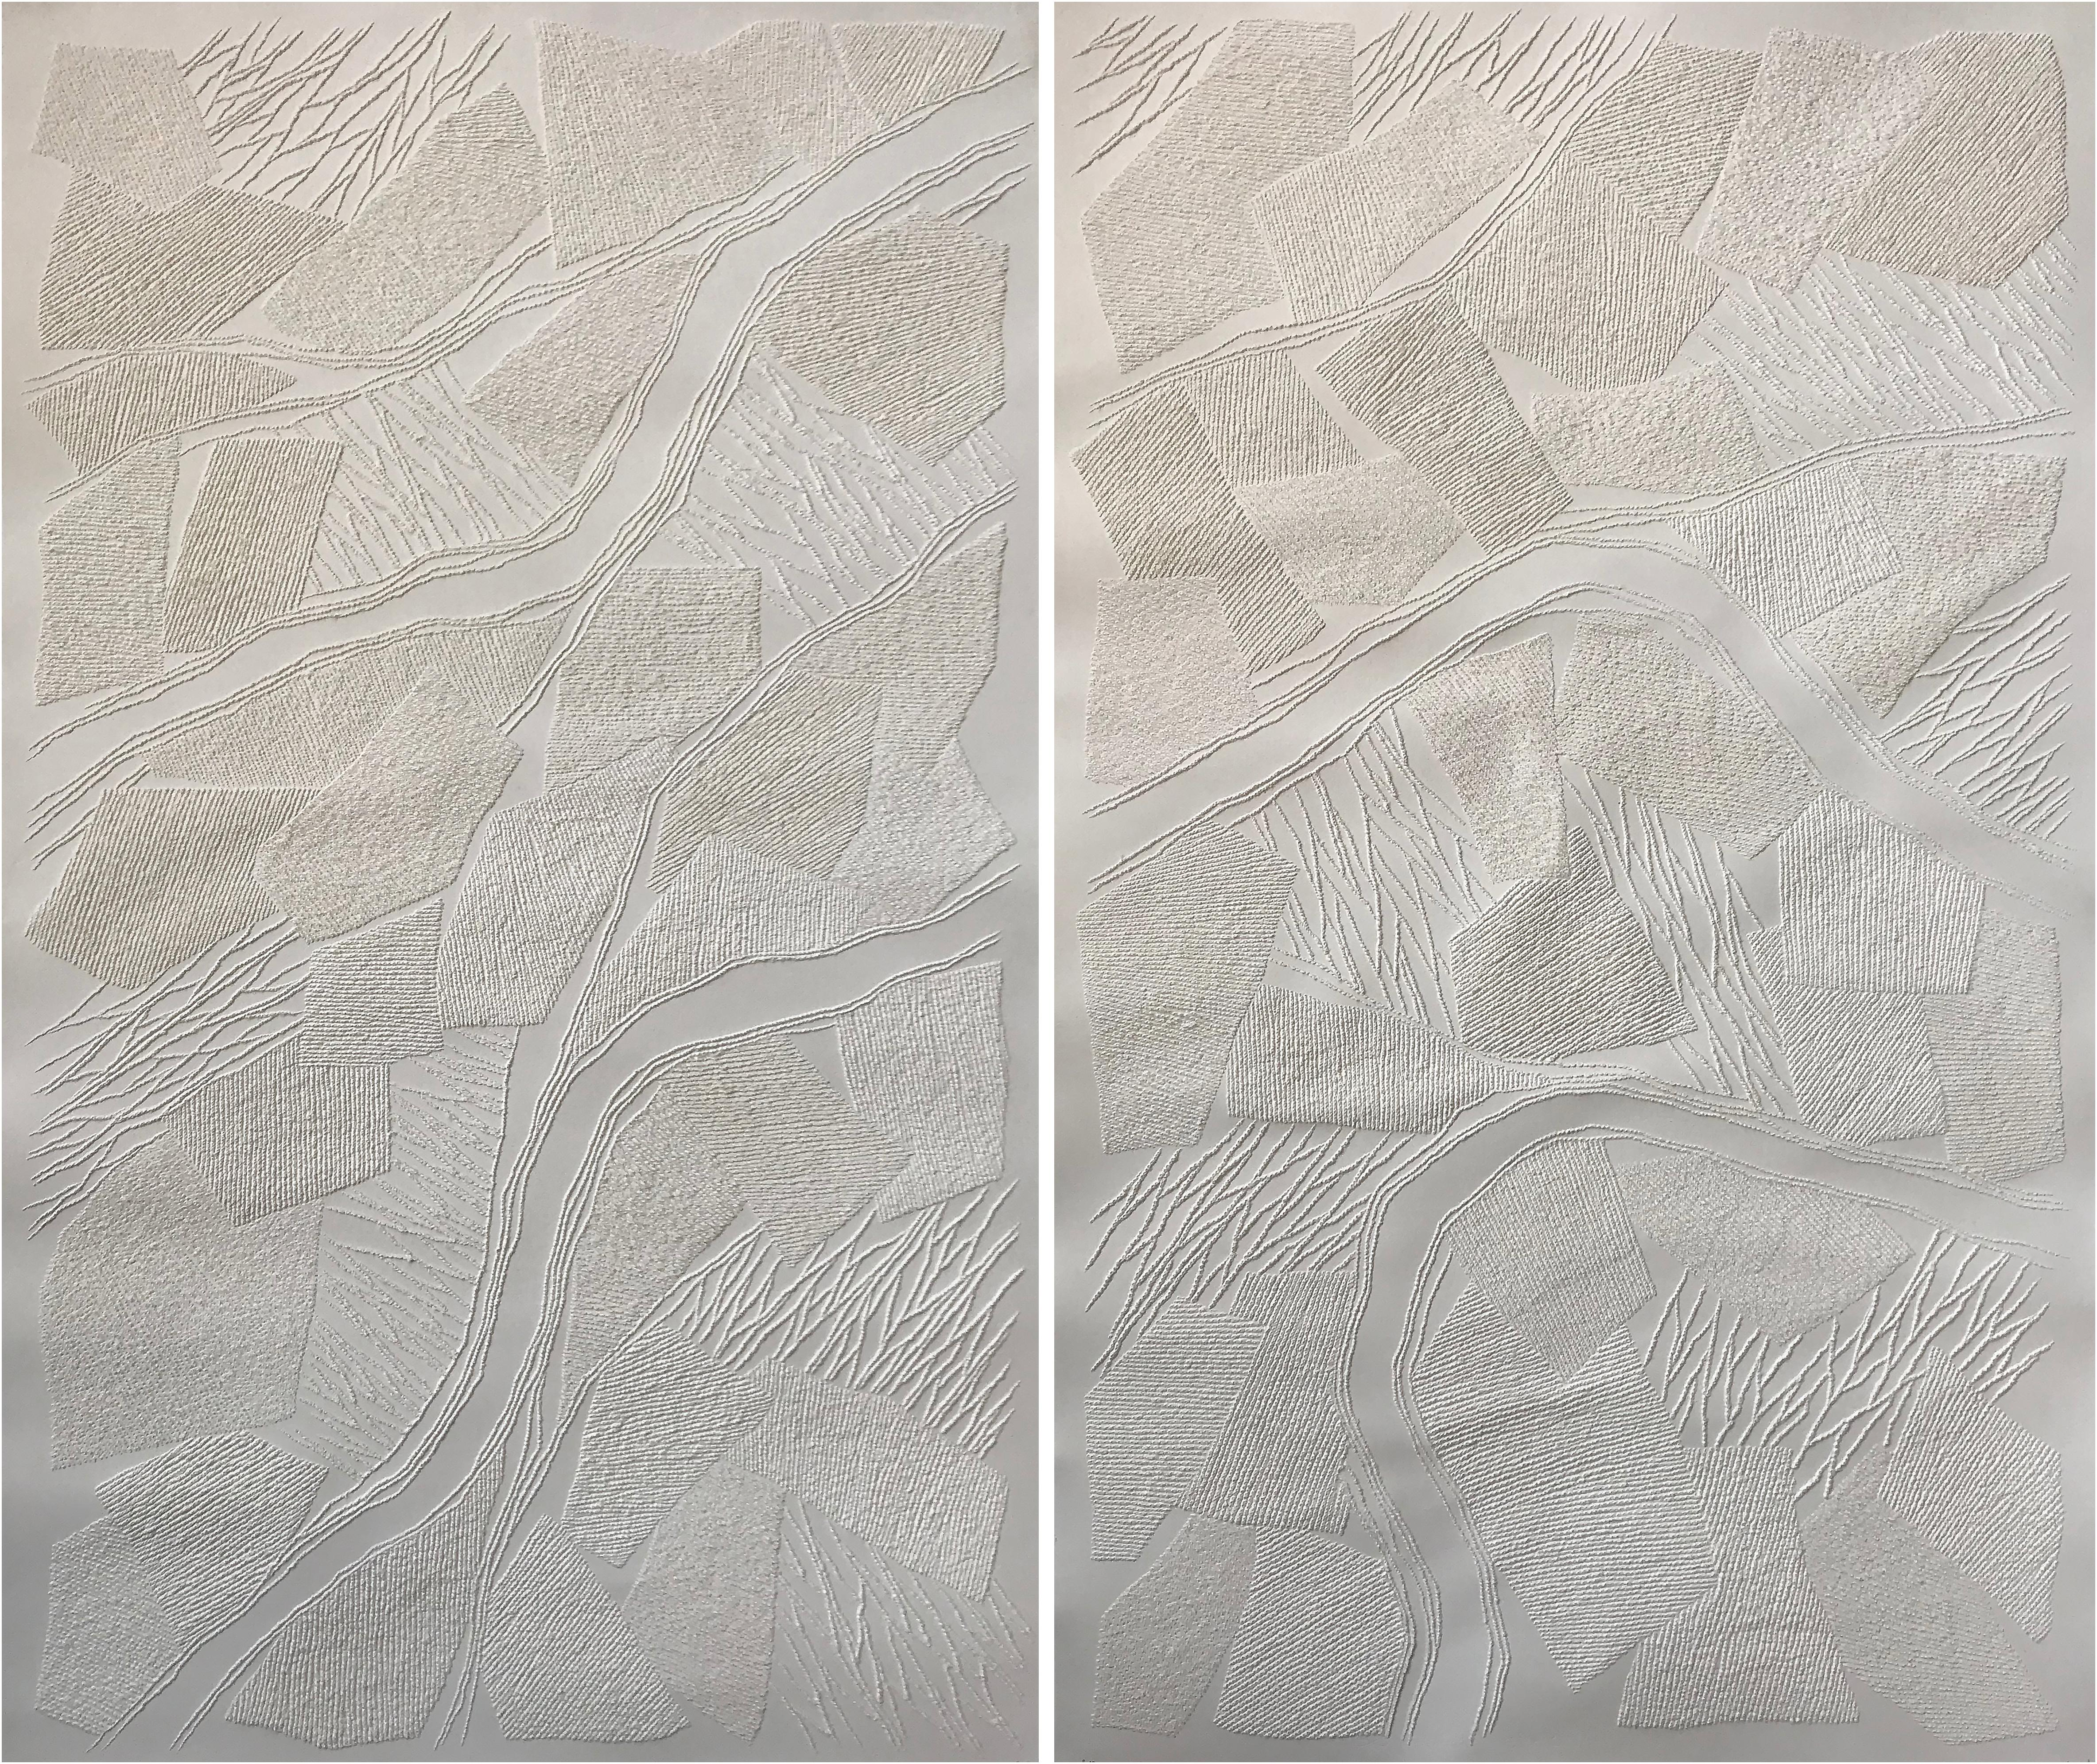 Dyptich 1 - intricate beige 3D abstract geometric drypoint drawing on paper